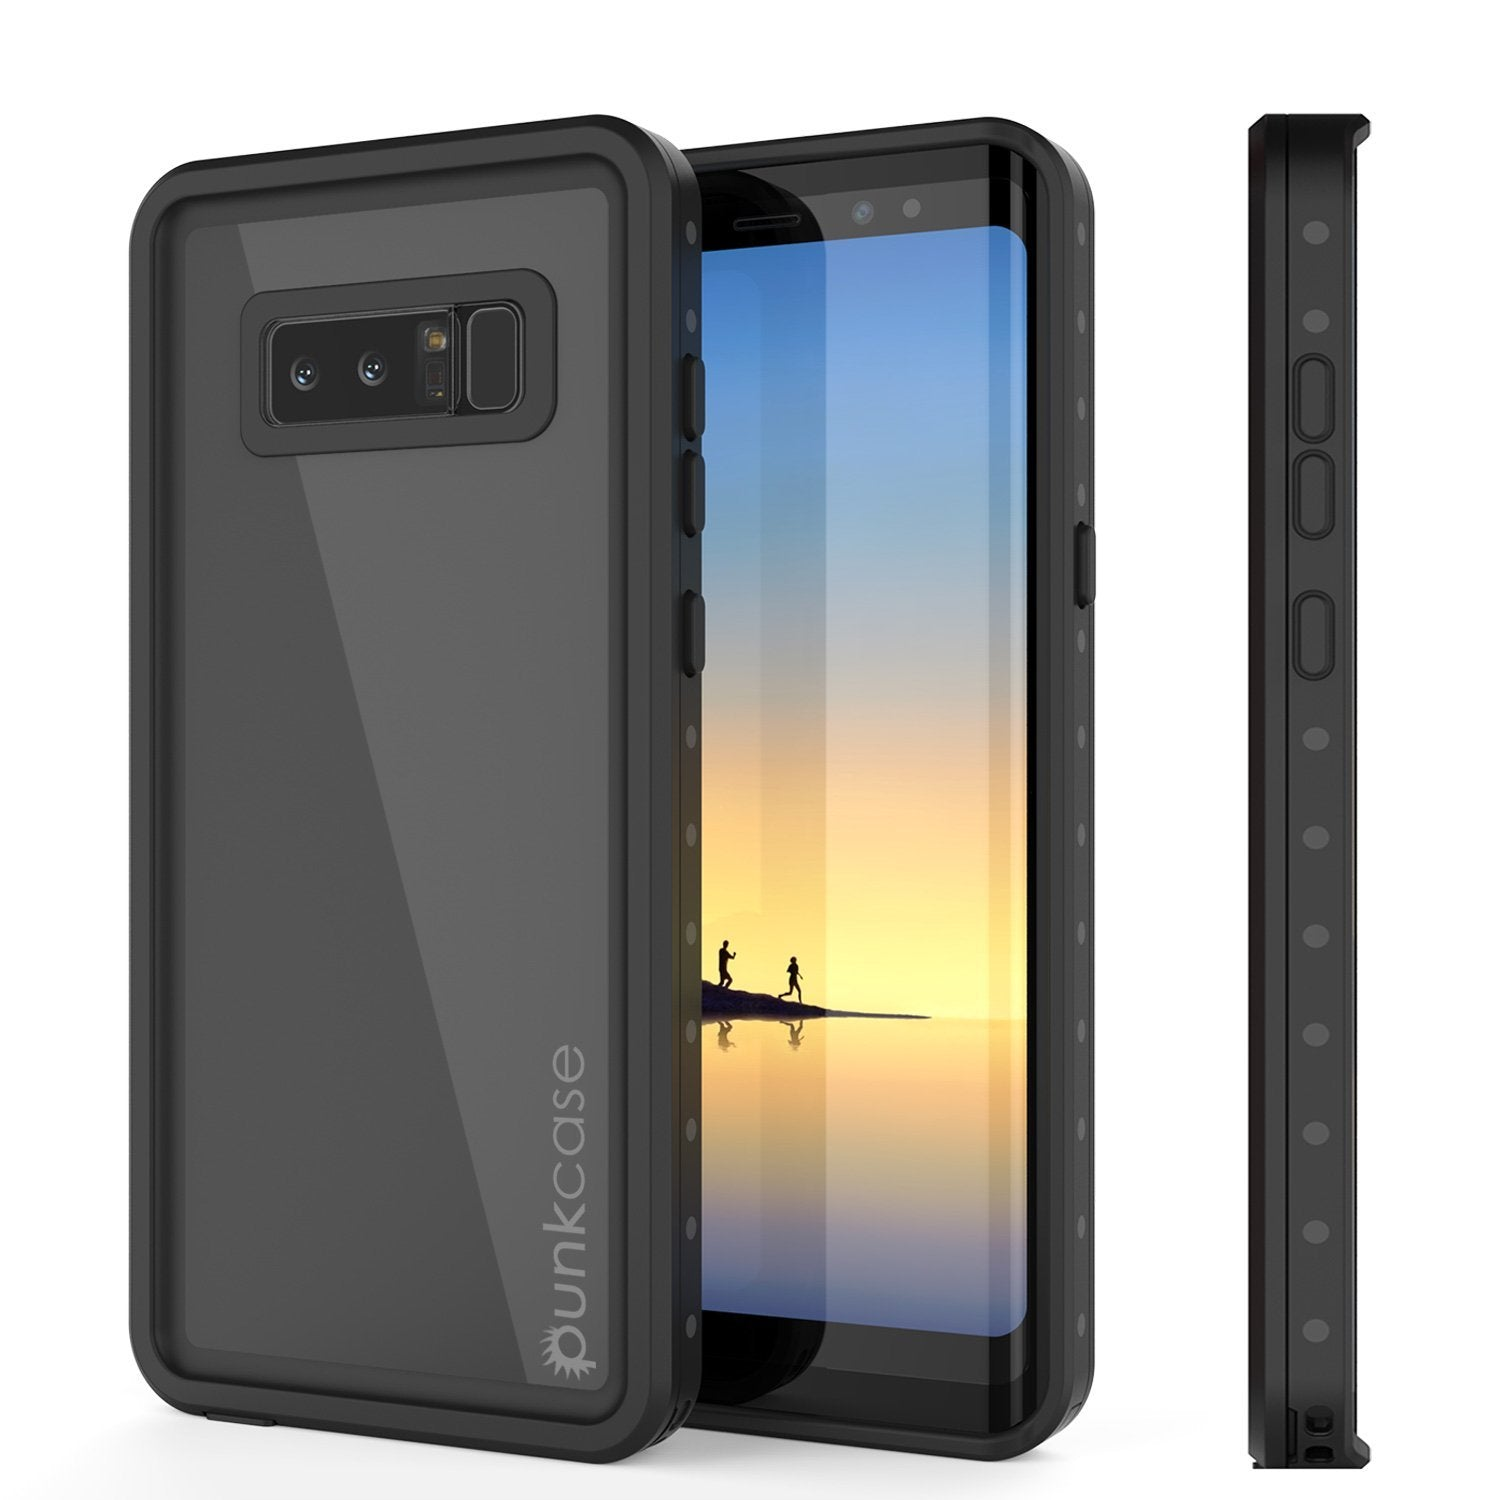 Galaxy Note 8 Punkcase Waterproof IP68 Shock/Snow Proof Case [Black]